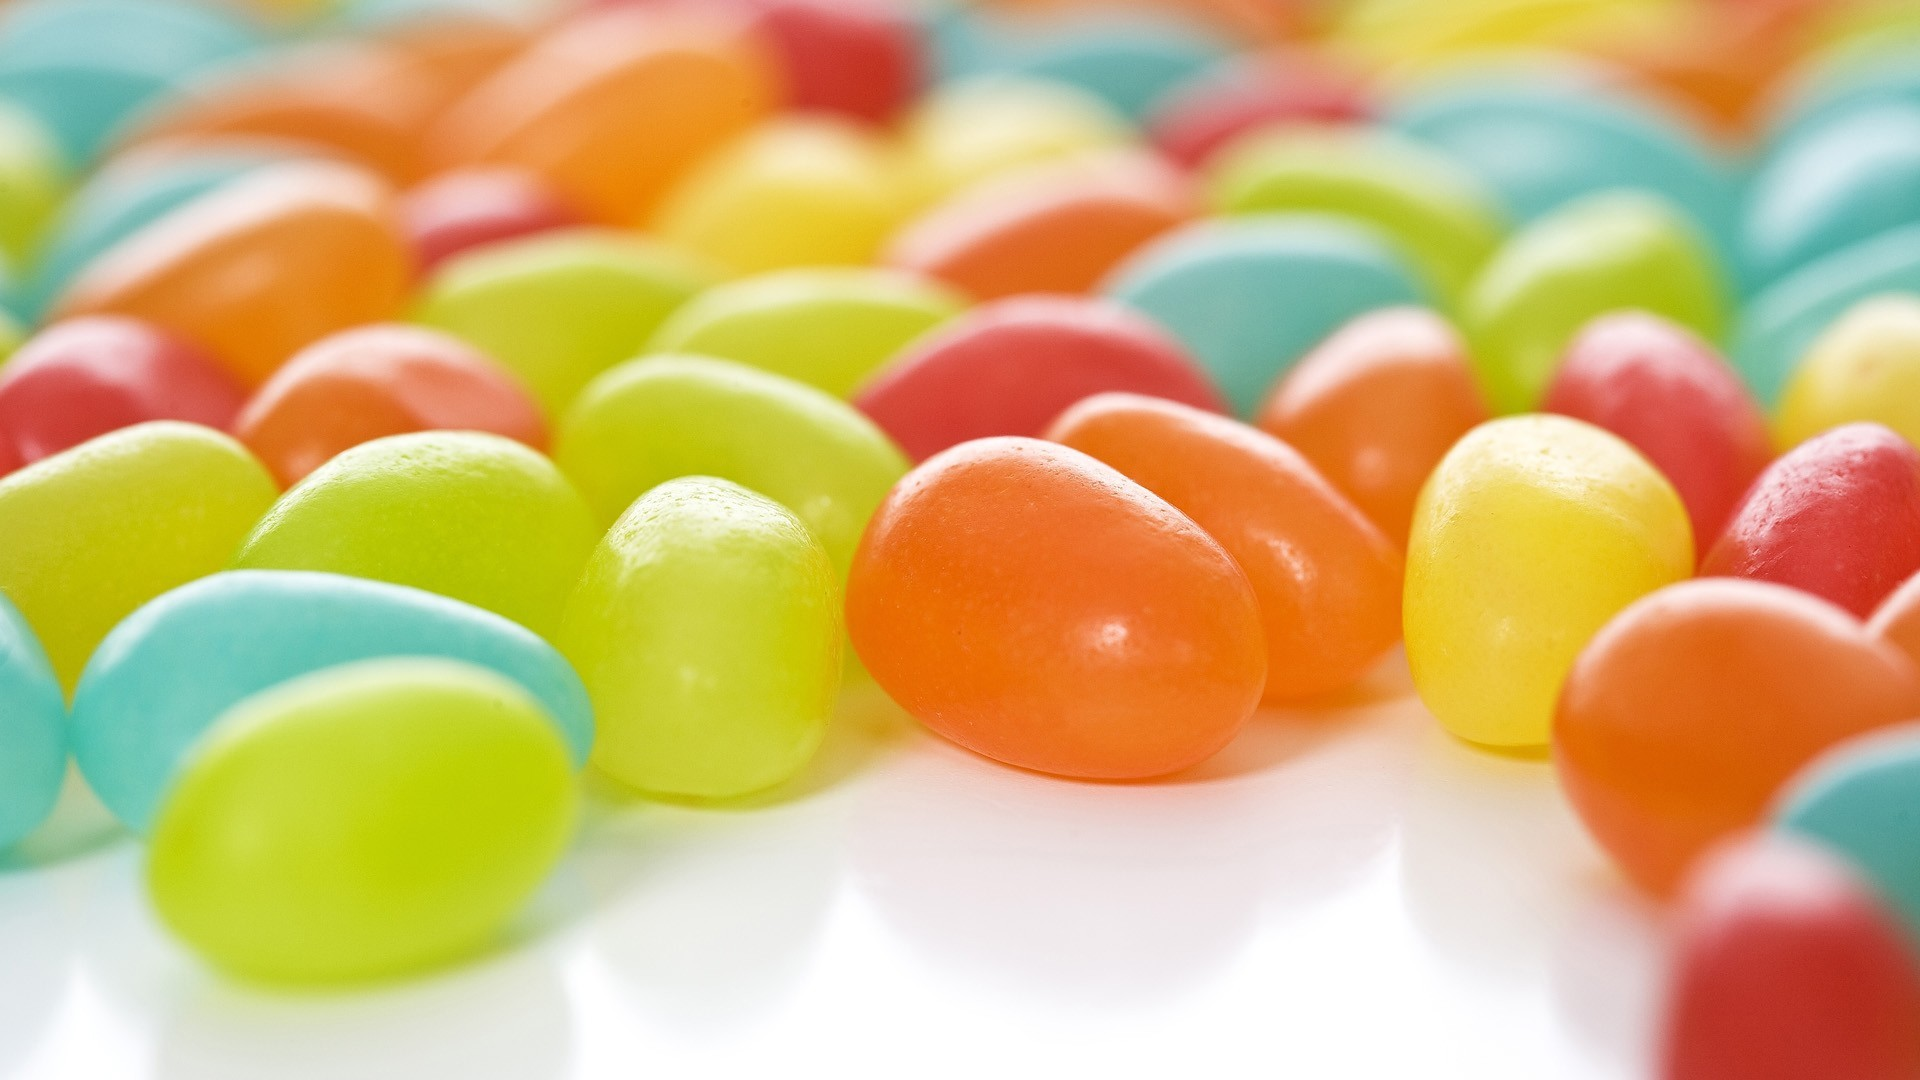 Food Colorful Candy Wallpaper 3421